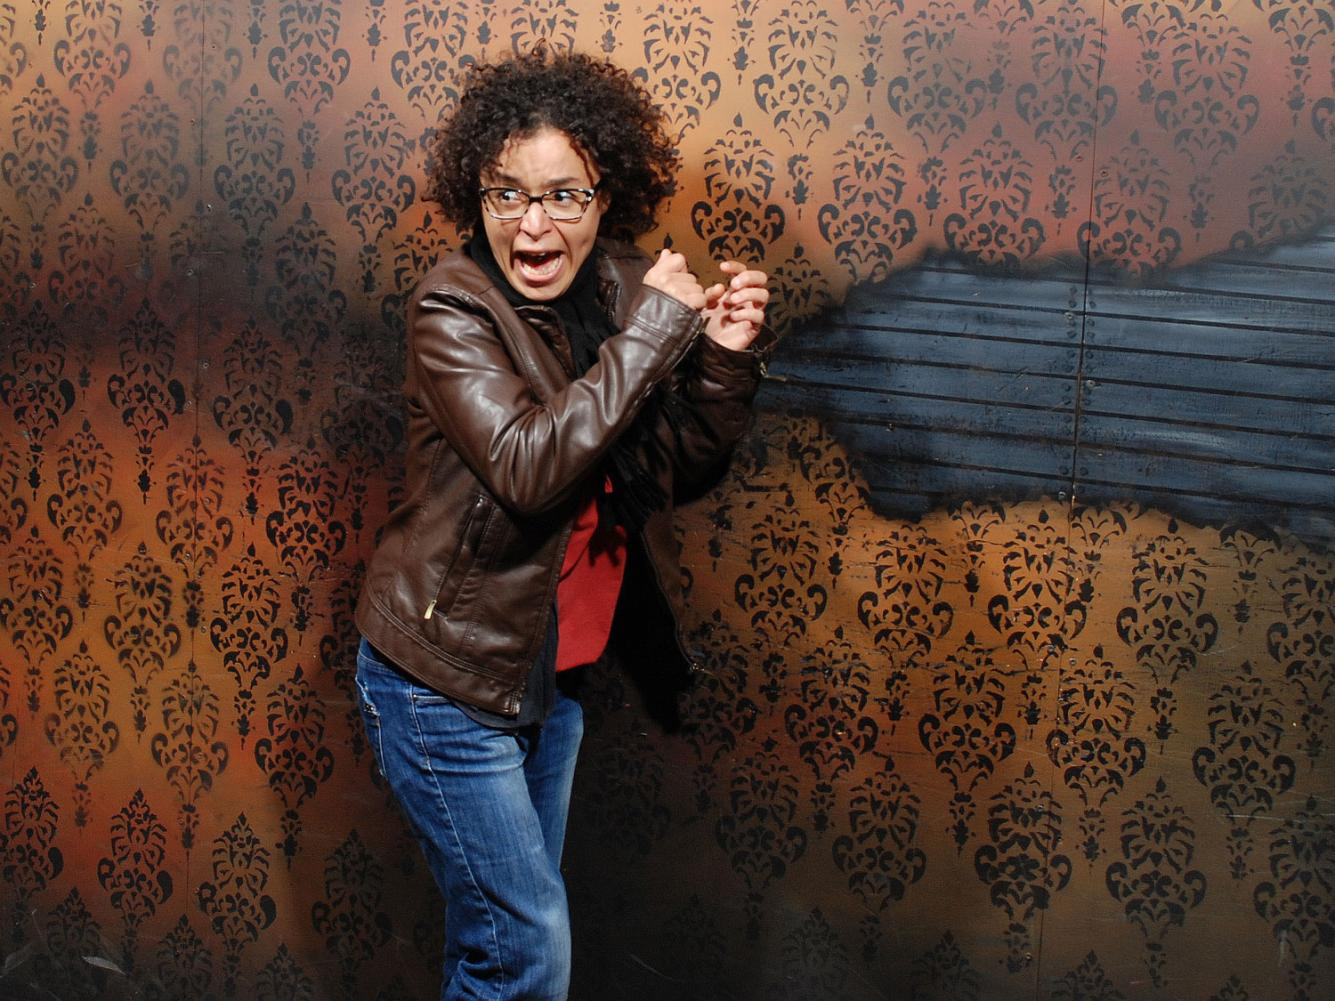 Nightmares Fear Factory Top 40 September 2013 pic0025